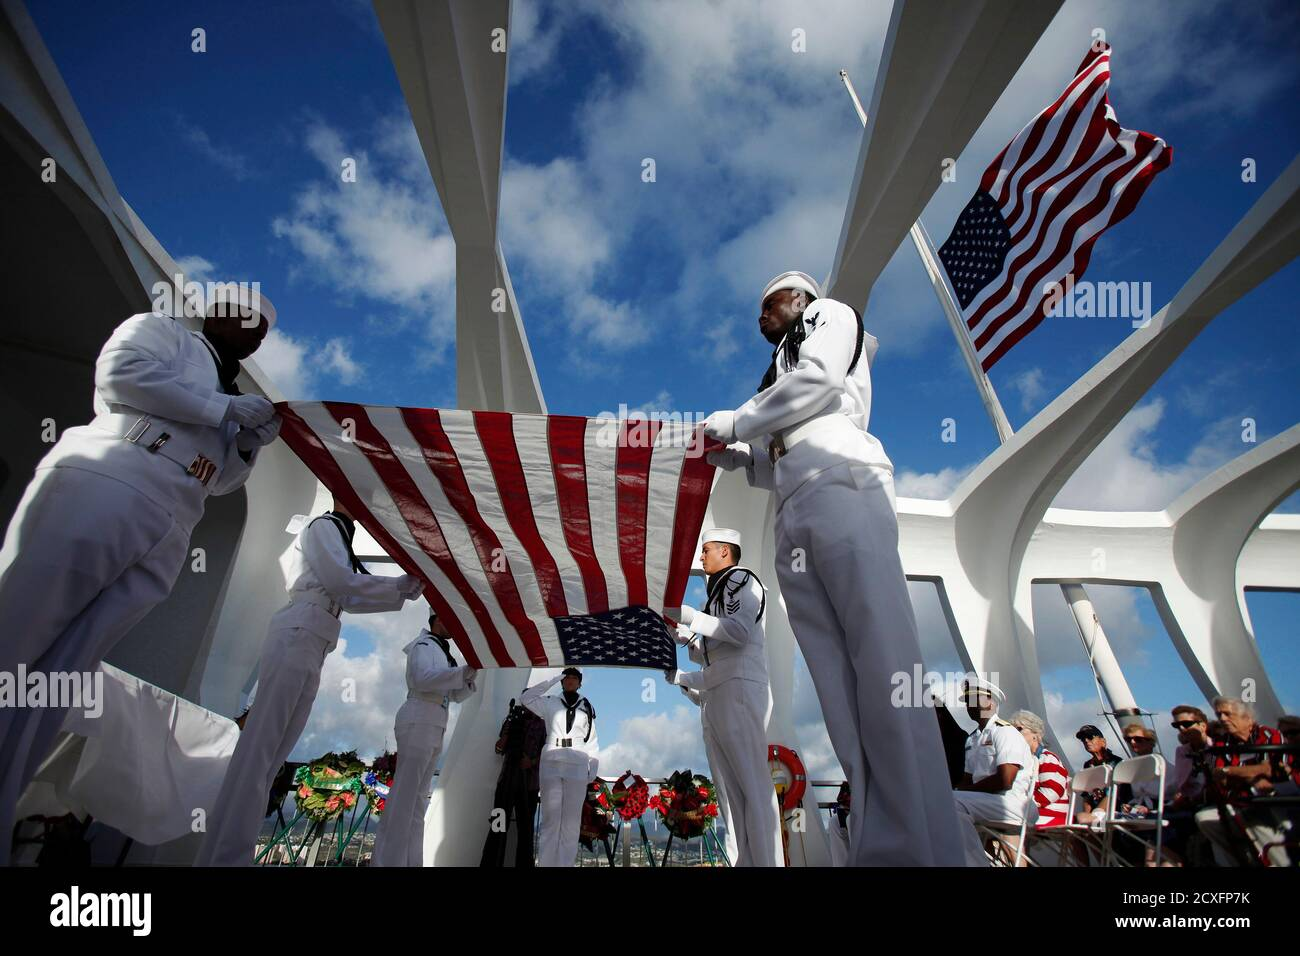 The U.S. Navy Region Hawaii Ceremonial Guard prepares the flag for Joann Olsen during the internment ceremony of her husband, USS Arizona survivor Vernon J. Olsen, aboard the USS Arizona Memorial during the 70th anniversary of the attack on Pearl Harbor at the World War II Valor in the Pacific National Monument in Honolulu, Hawaii December 7, 2011. REUTERS/Hugh Gentry (UNITED STATES - Tags: ANNIVERSARY CONFLICT) Foto de stock